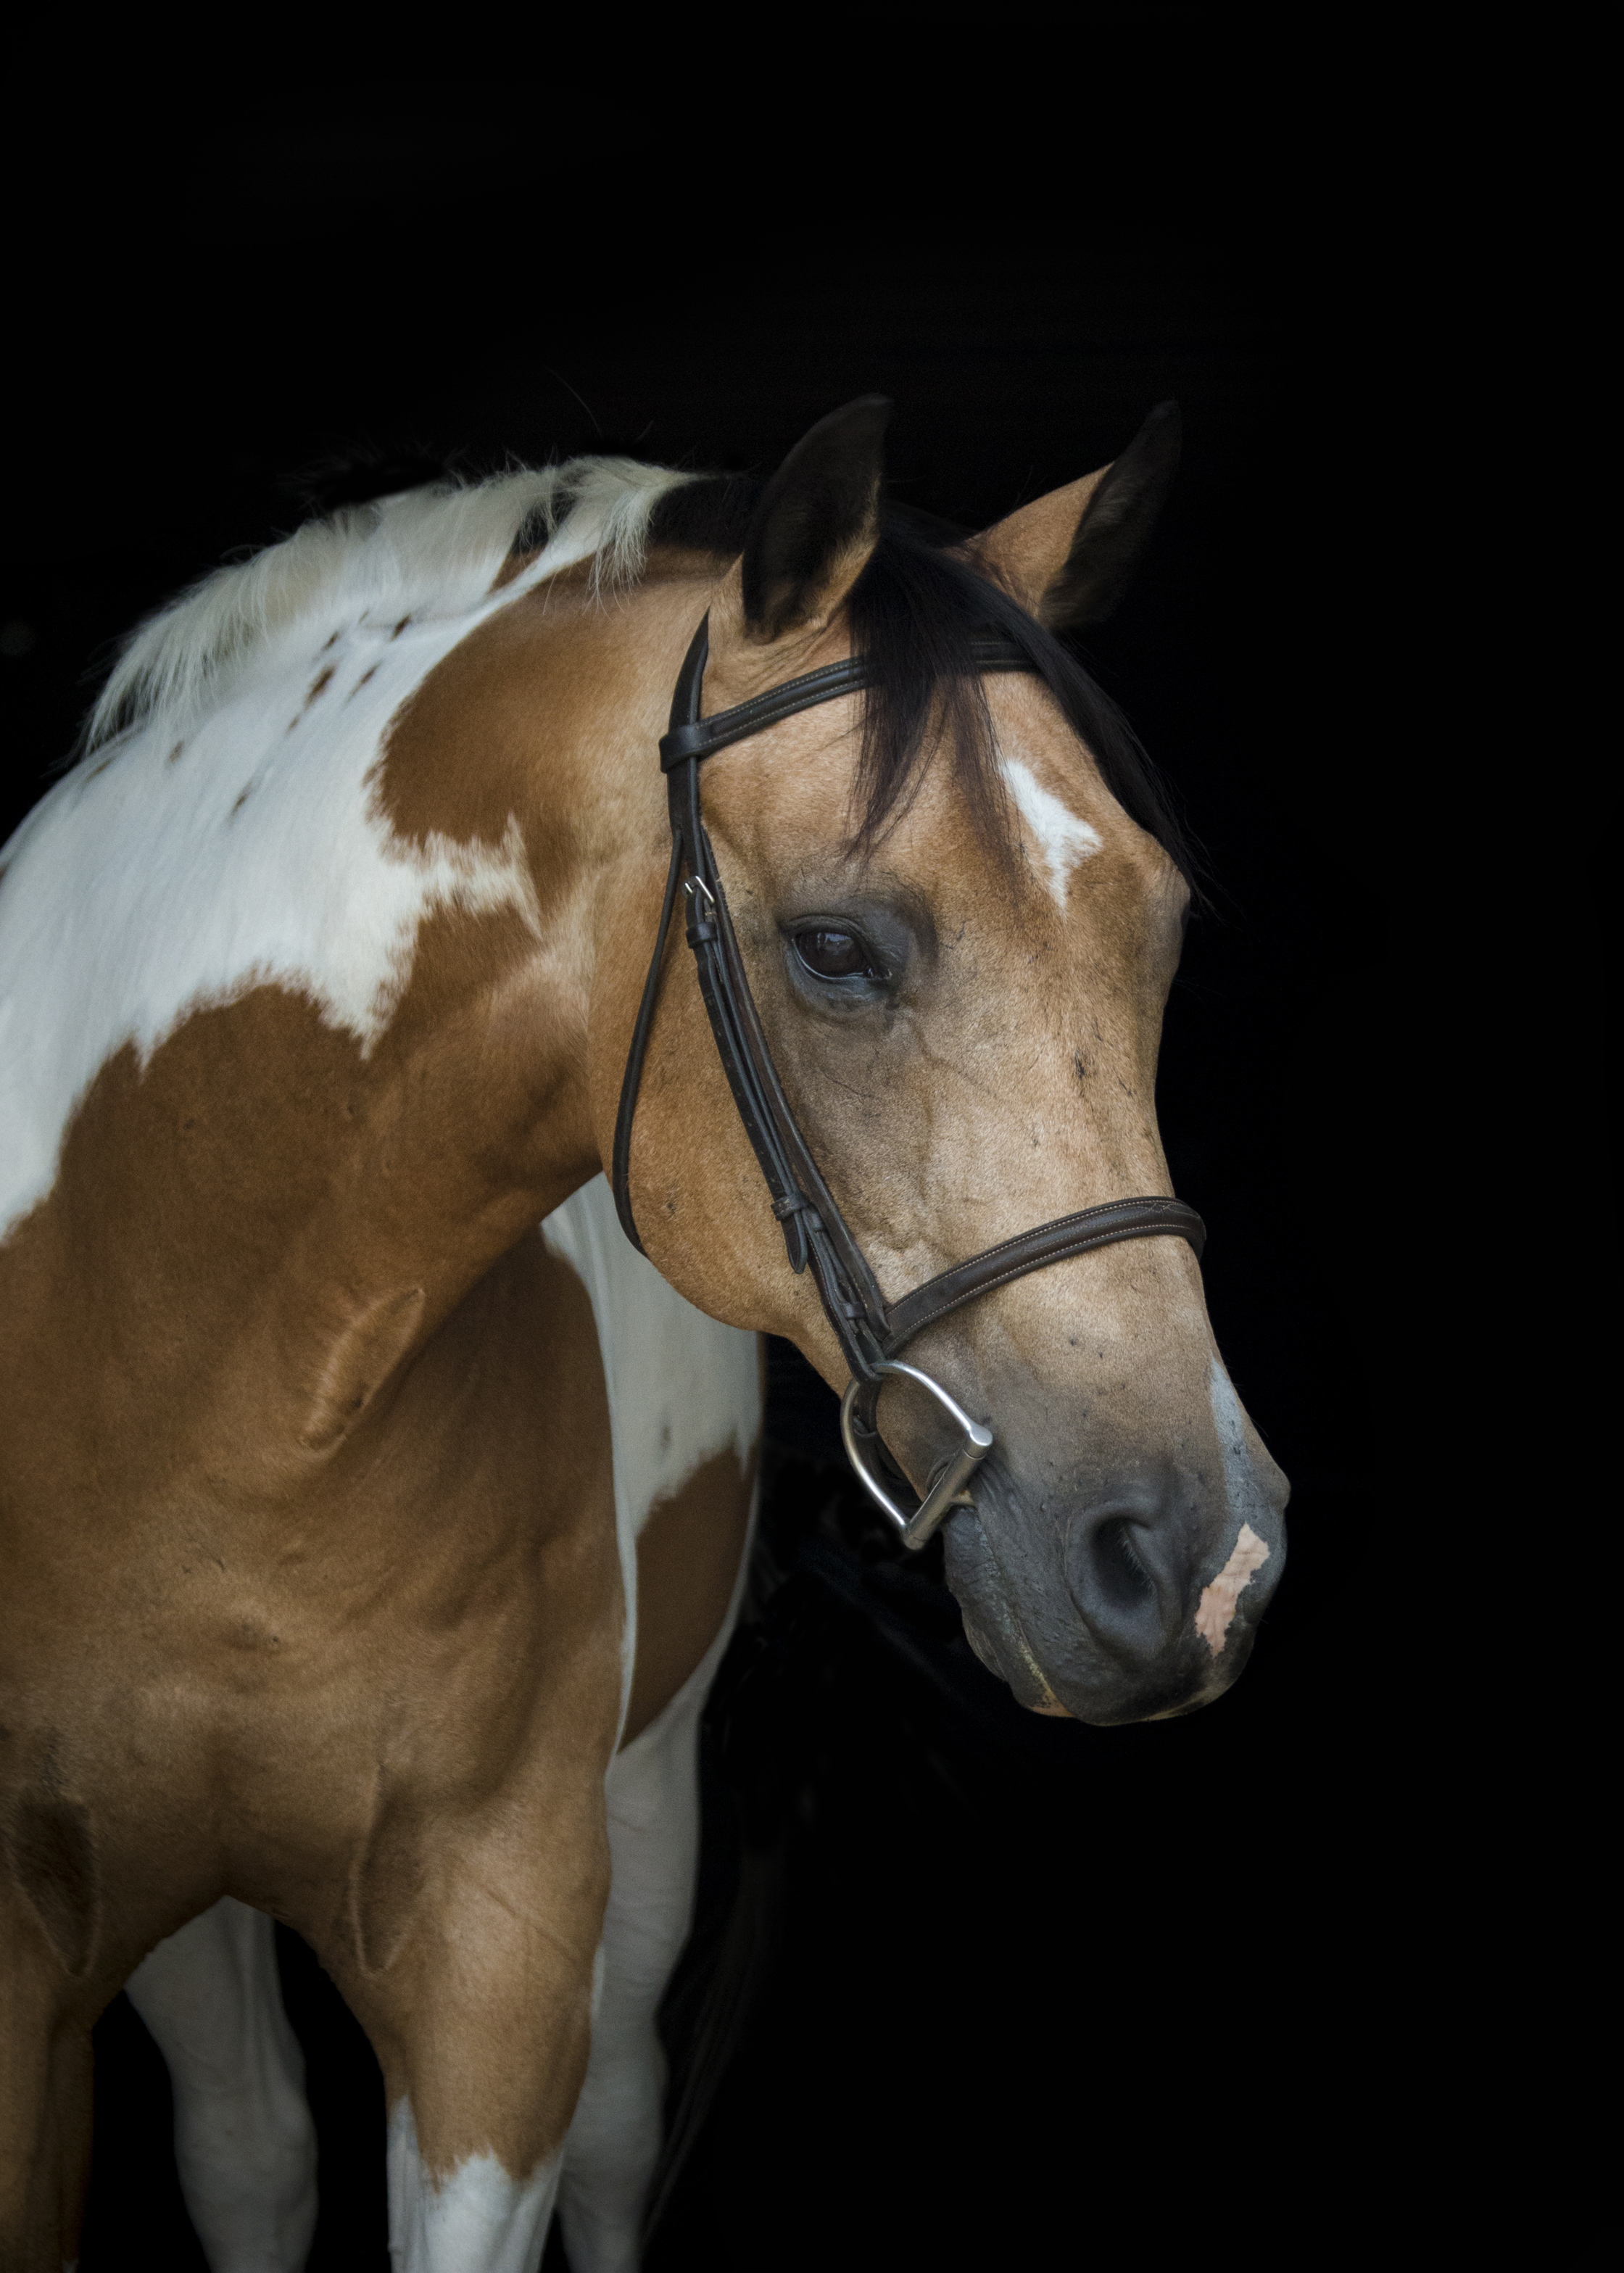 DORITO Birthday: 1993 Breed: Pinto Gelding Height: 15.2 hands